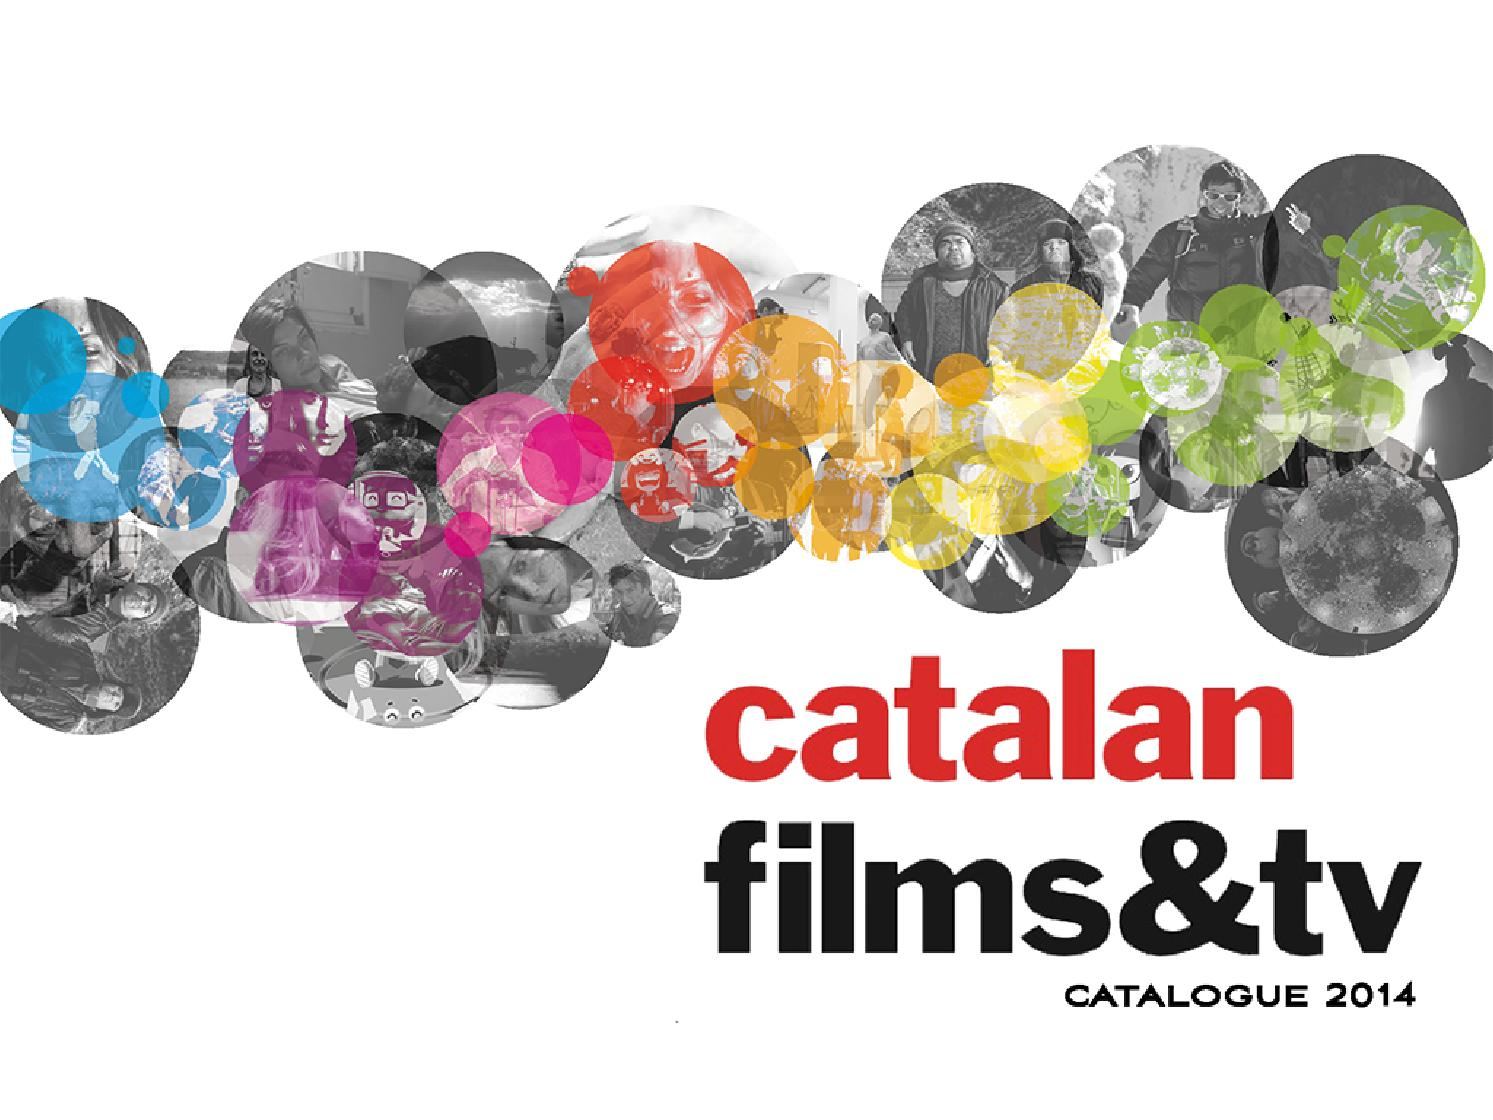 Catalam Films & Tv catalogue 2014 by catalanfilms - issuu